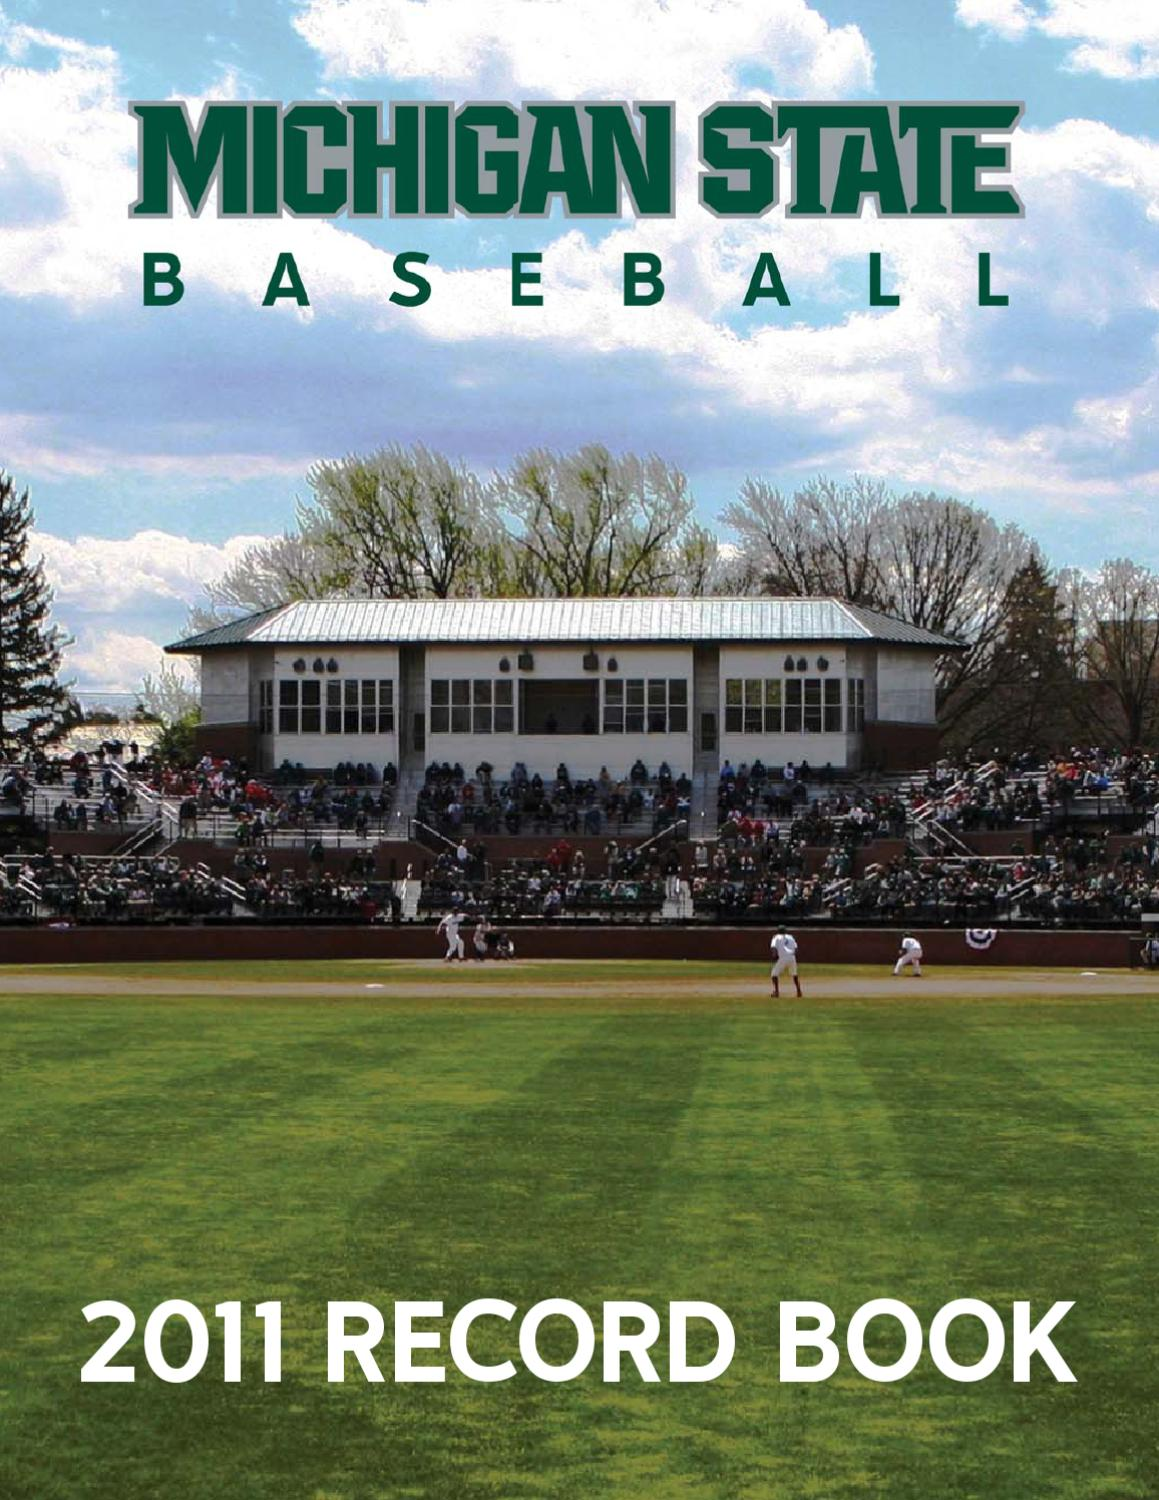 2011 michigan state baseball record book by ben phlegar issuu